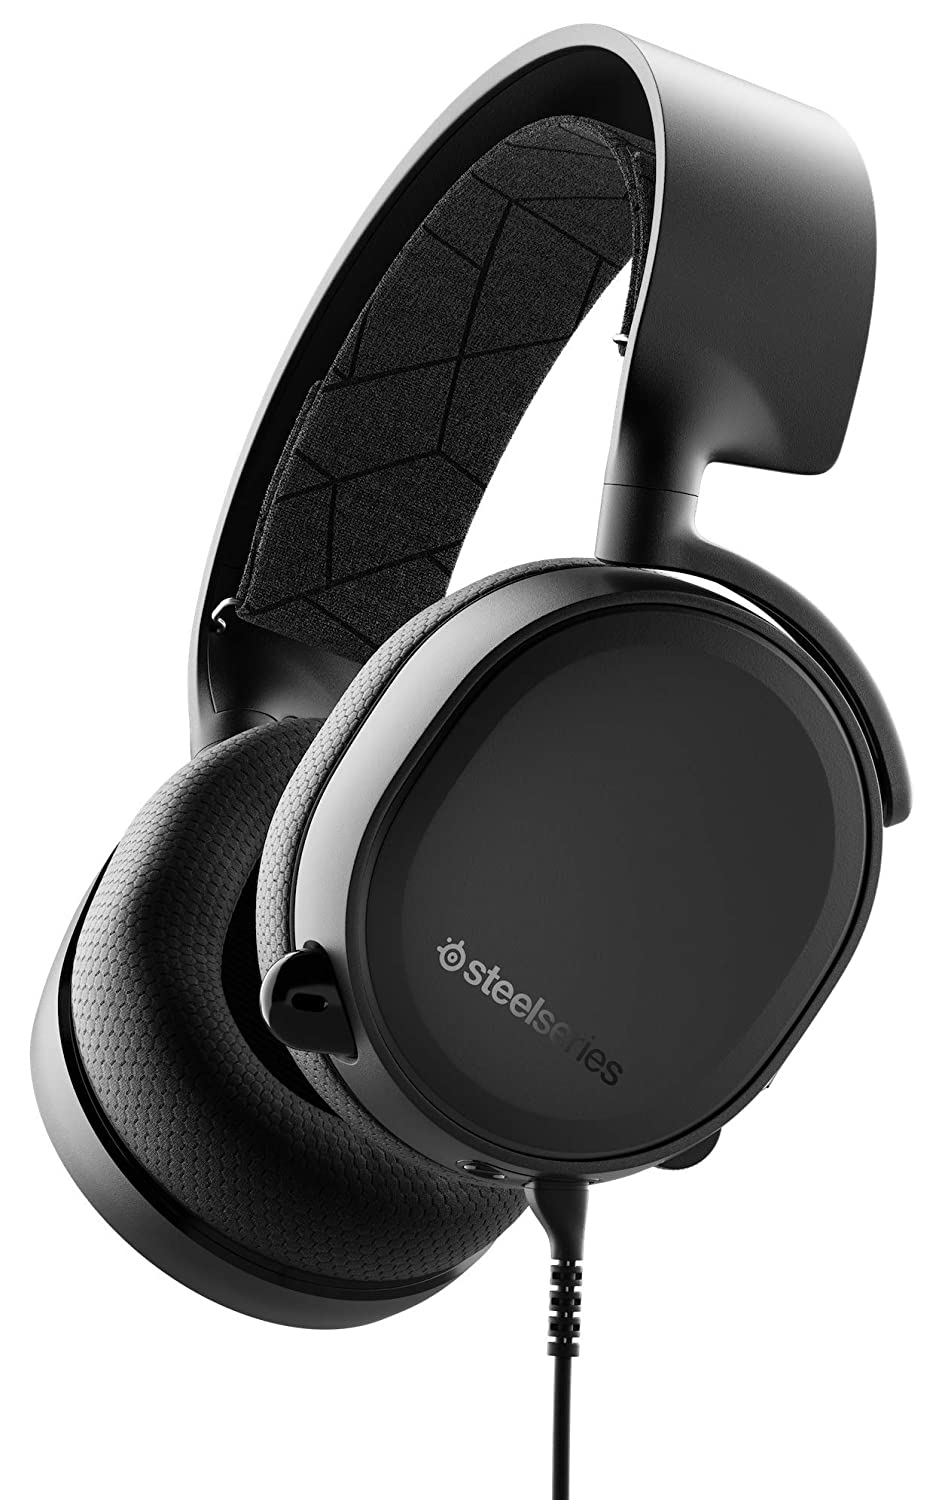 SteelSeries Arctis 3 - Auriculares de Juego multiplataforma - para PC, Playstation 4, Xbox One, Nintendo Switch, RV, Android y iOS - Negro [Edición 2019]